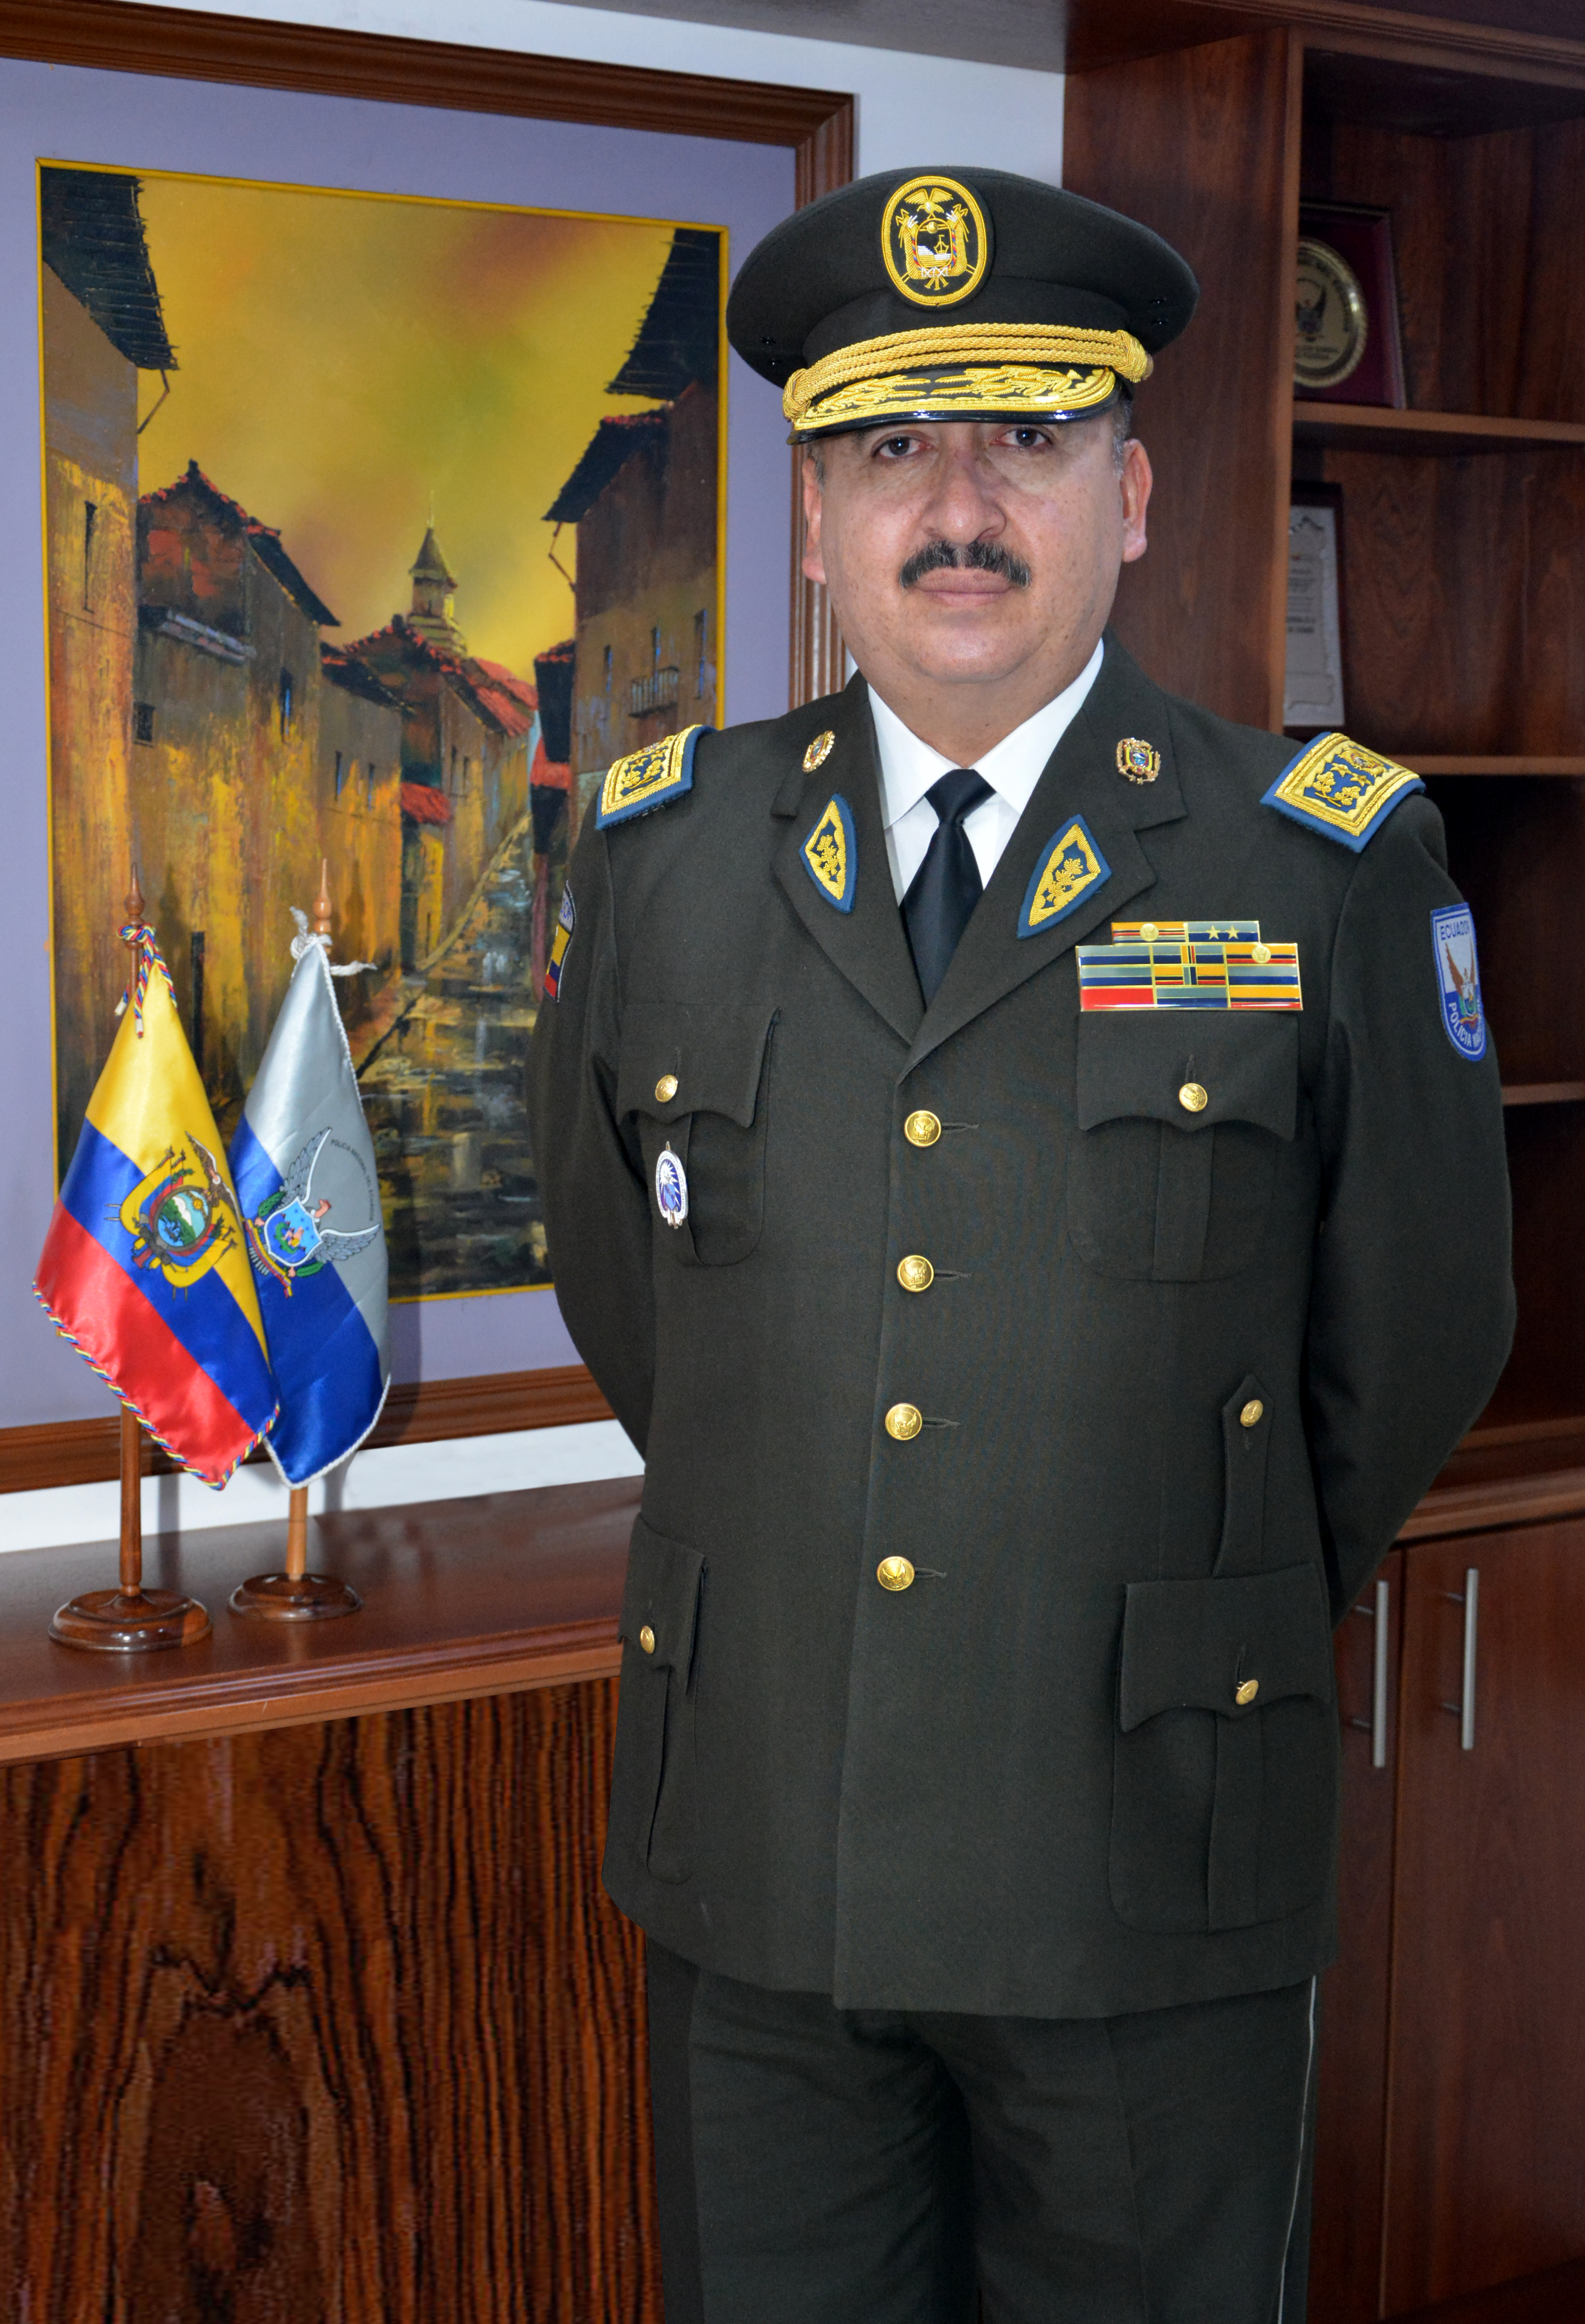 Inspector General Milton Gustavo Zárate Barreiros